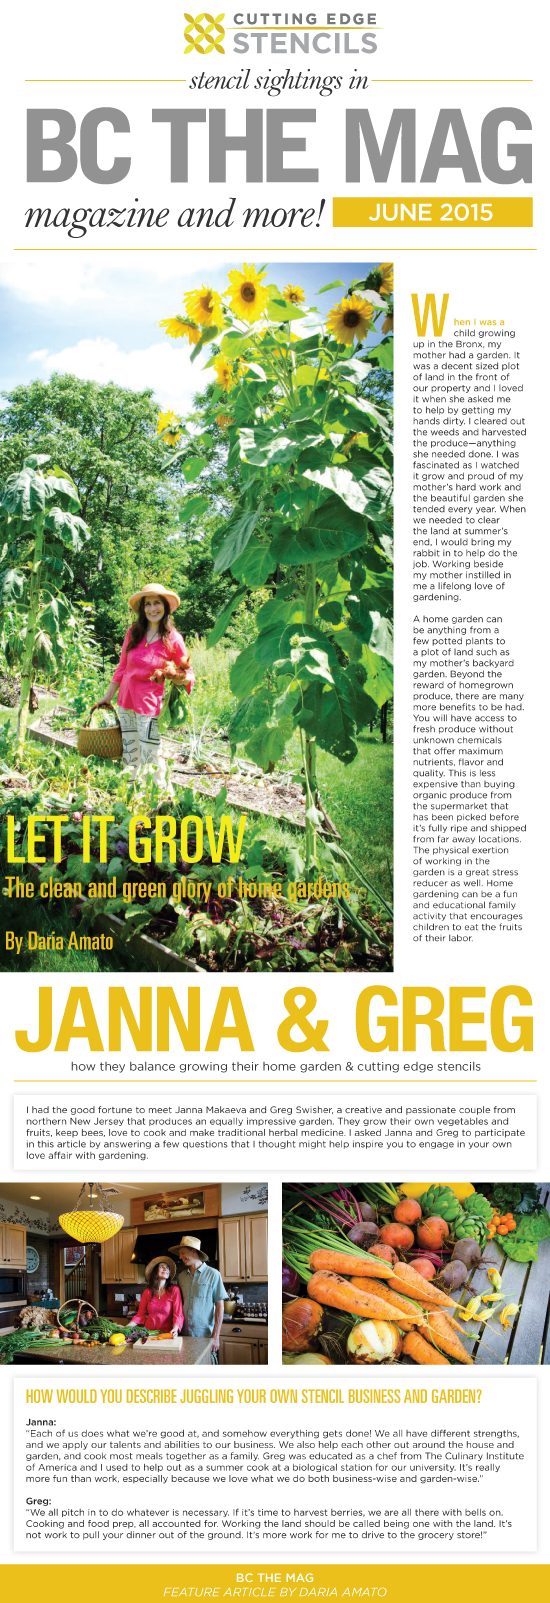 Greg and Janna from Cutting Edge Stencils were featued in Bergen County Magazine for their home garden, beekeeping, and herbal medicine tips. http://www.cuttingedgestencils.com/wall-stencils.html